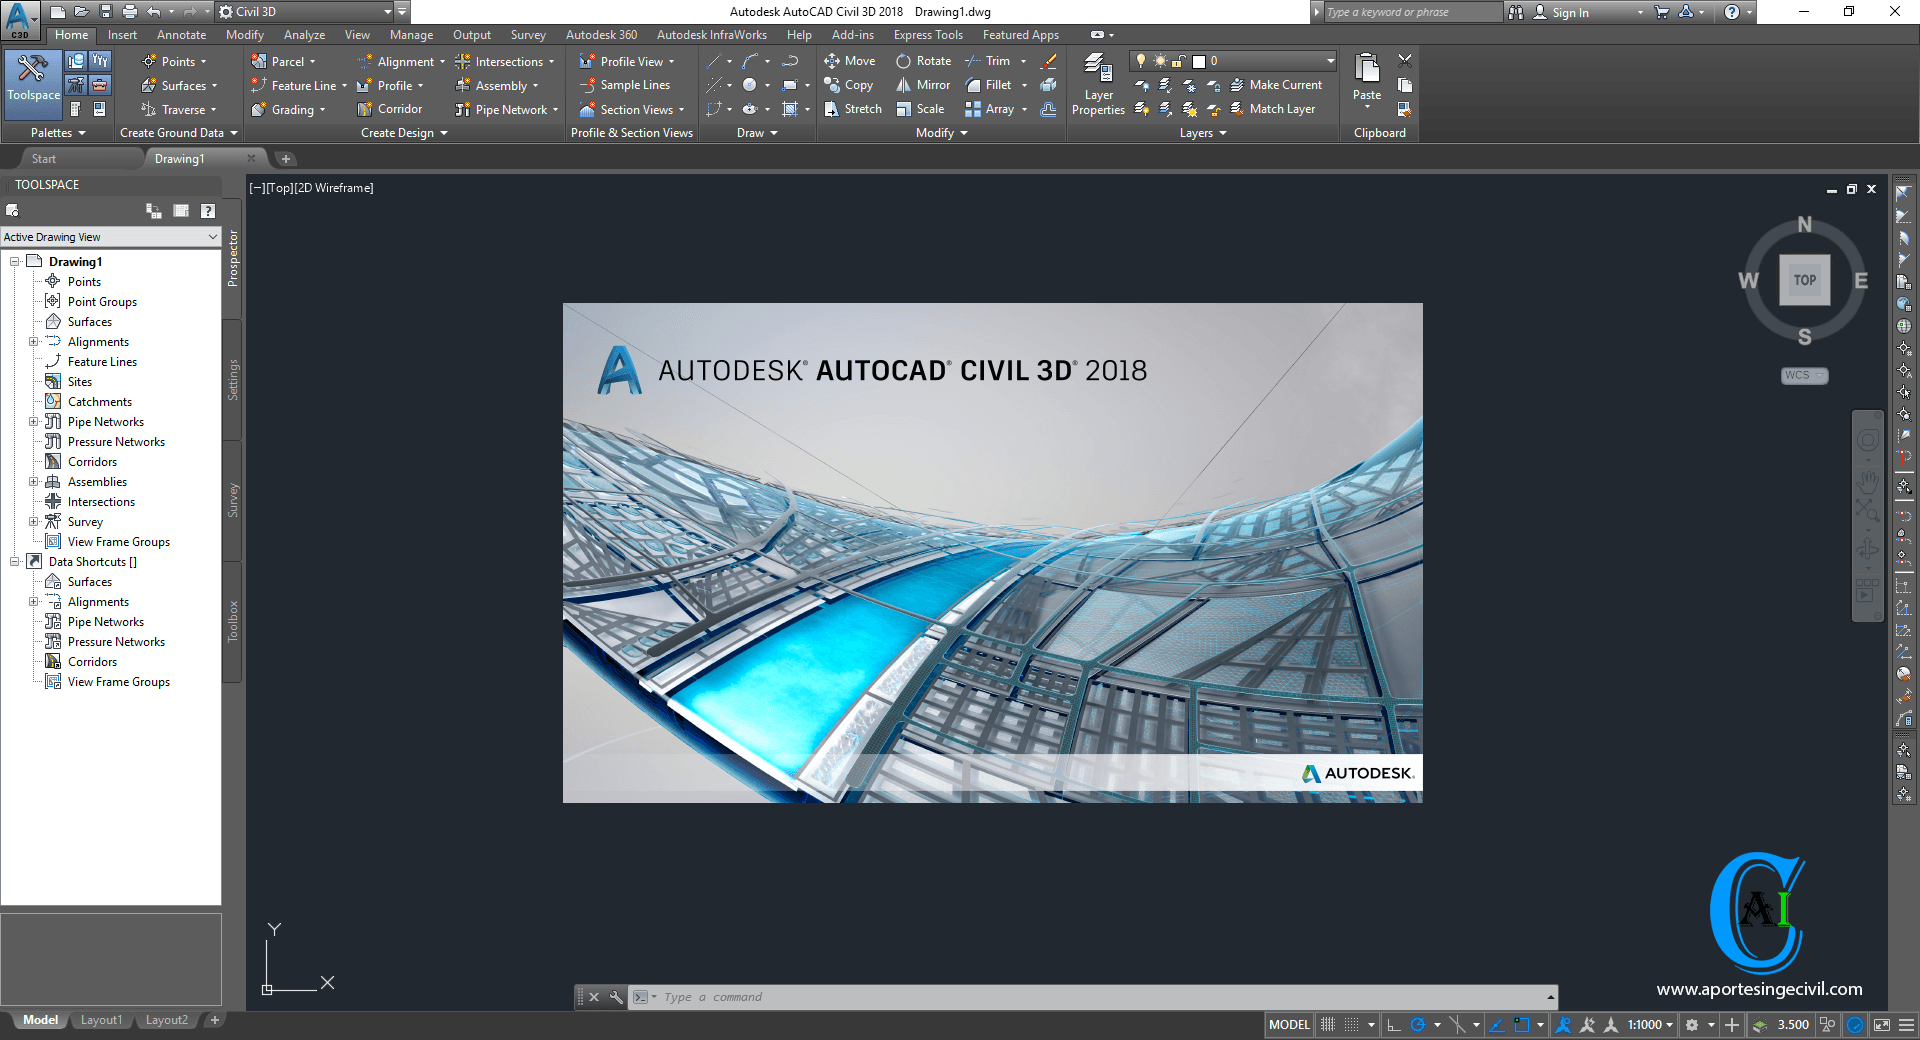 Keygen autocad 2014 civil 3d